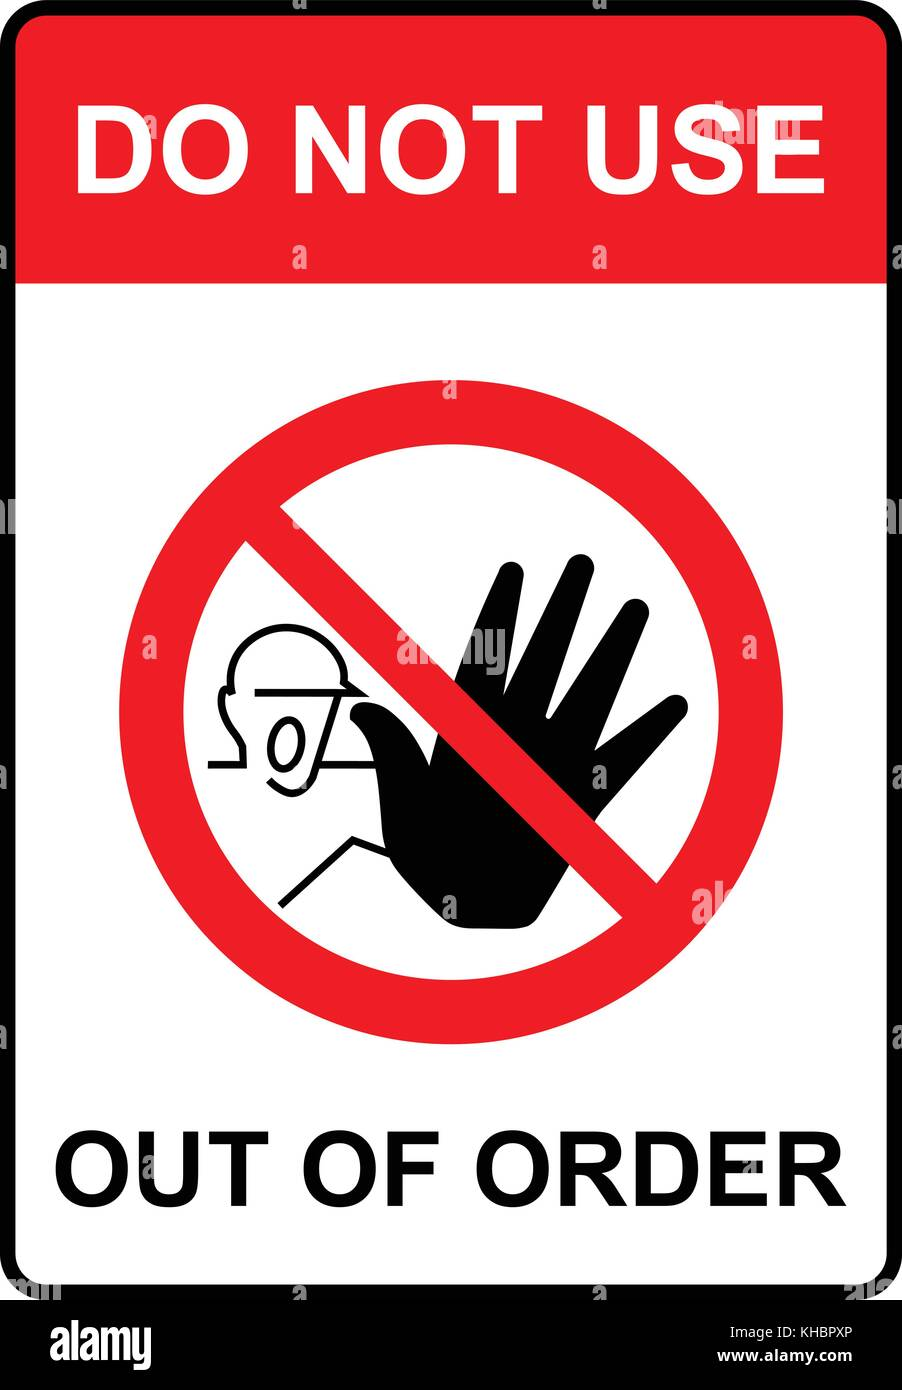 Do not use, out of order, warning sign, vector illustration. - Stock Vector